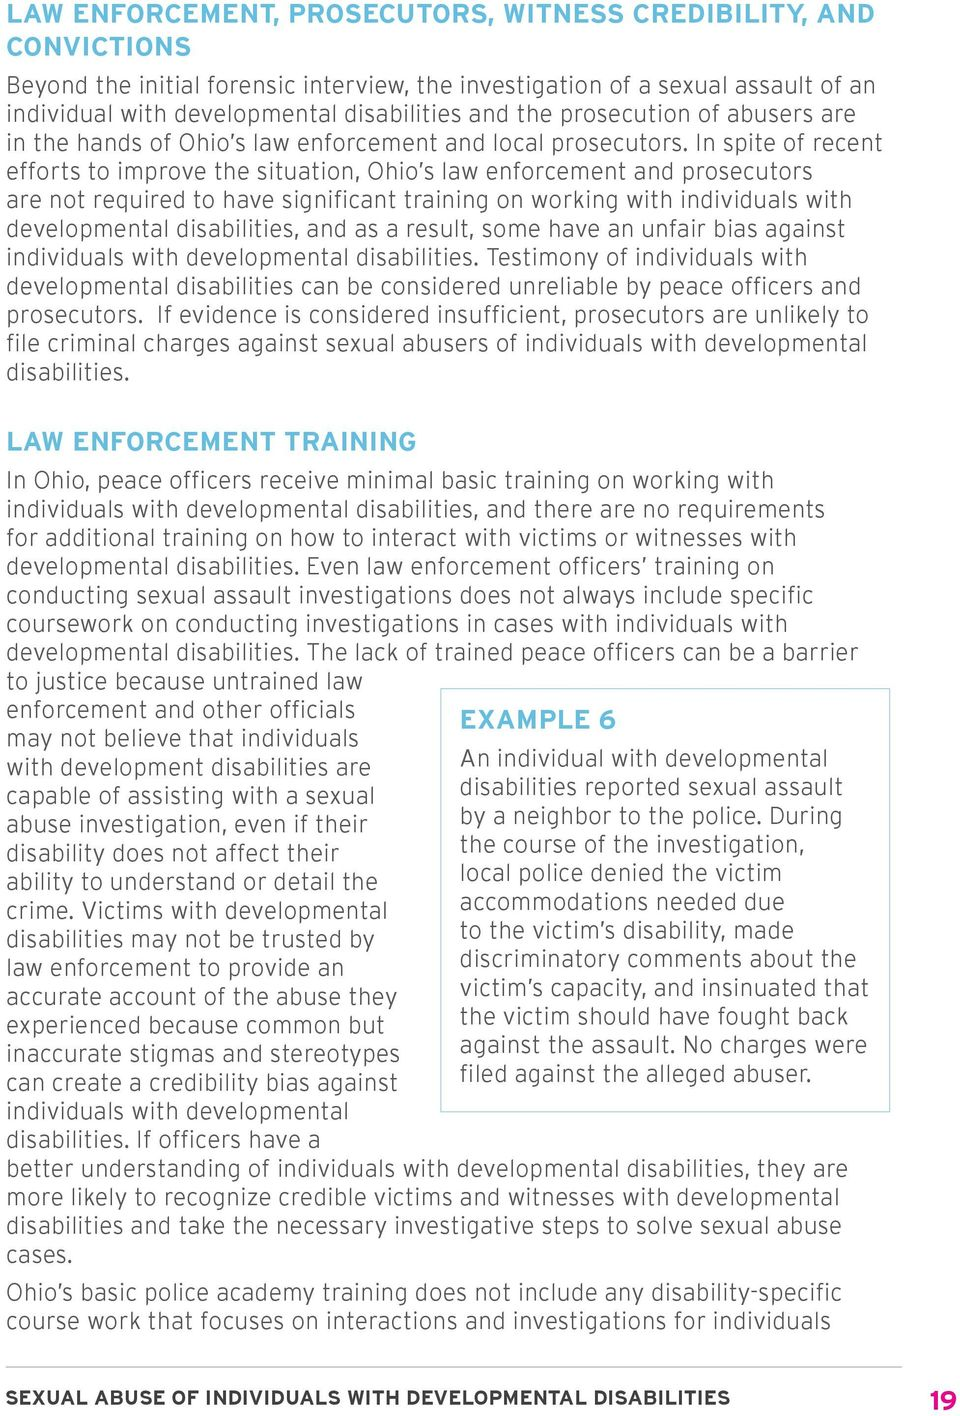 In spite of recent efforts to improve the situation, Ohio s law enforcement and prosecutors are not required to have significant training on working with individuals with developmental disabilities,